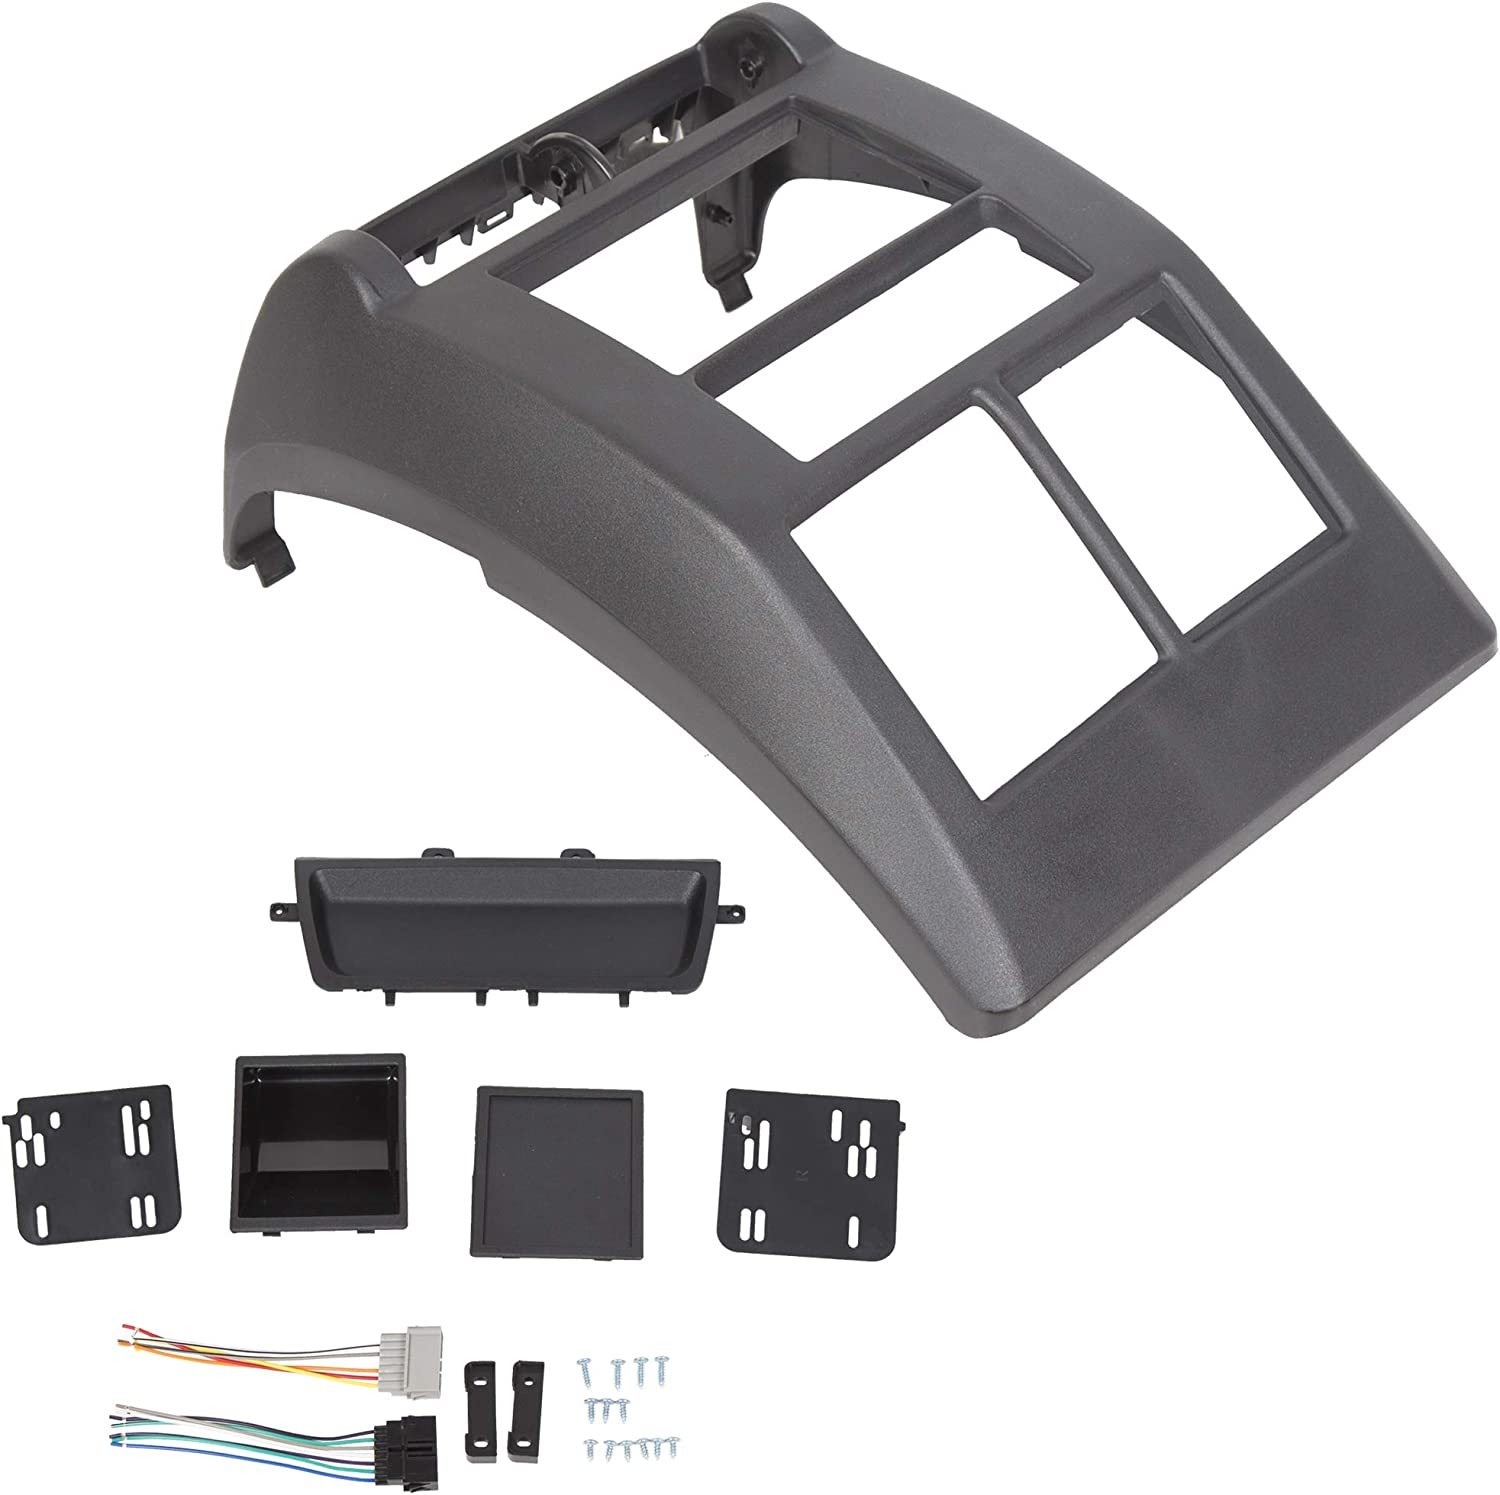 JMTAAT Double Din Dash Bezel Radio Stereo Mounting Kit for 1997-2002 Jeep Wrangler TJ